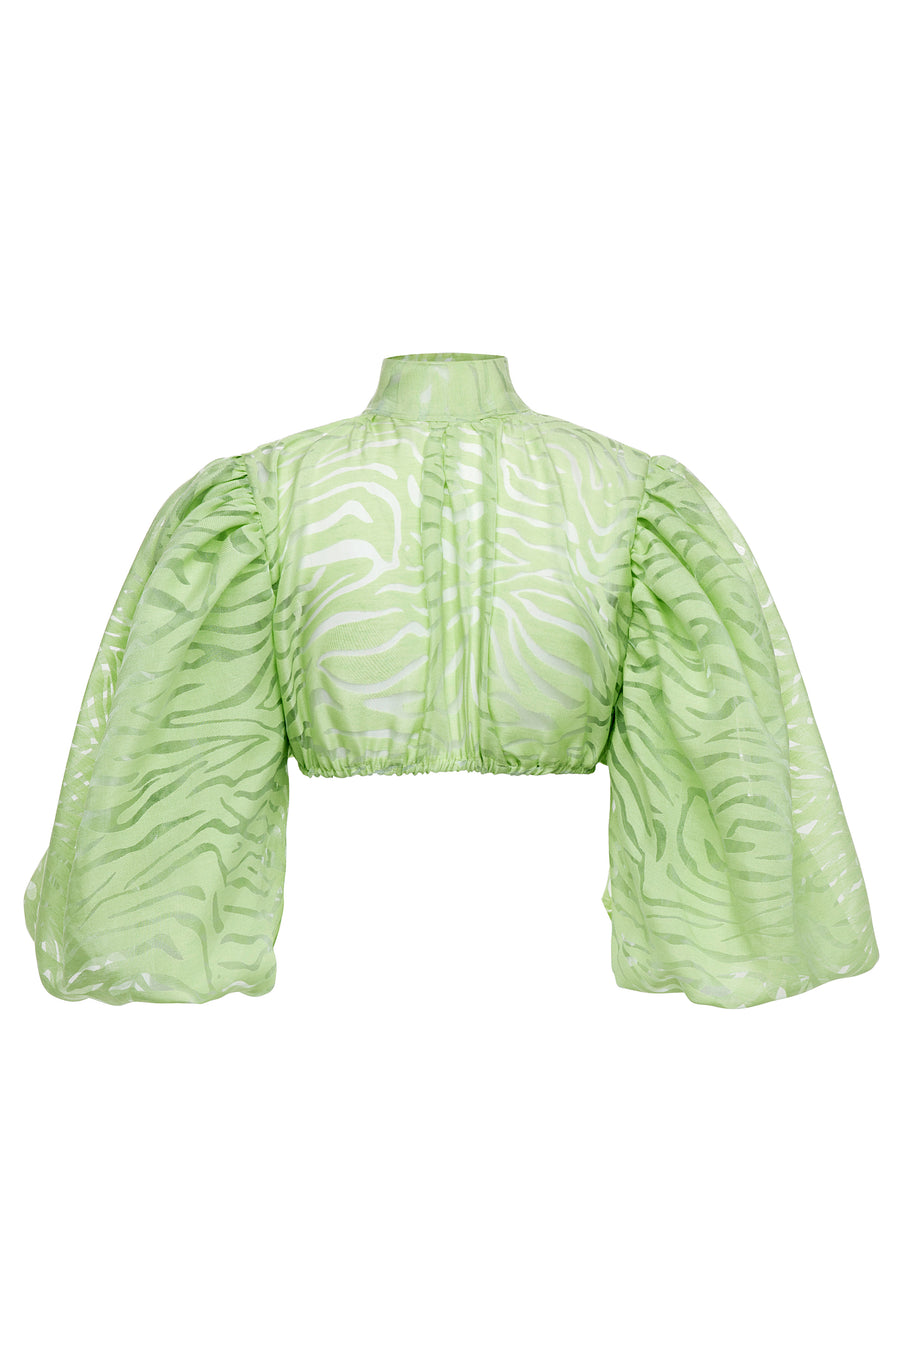 Dancehall Puff Sleeve Top